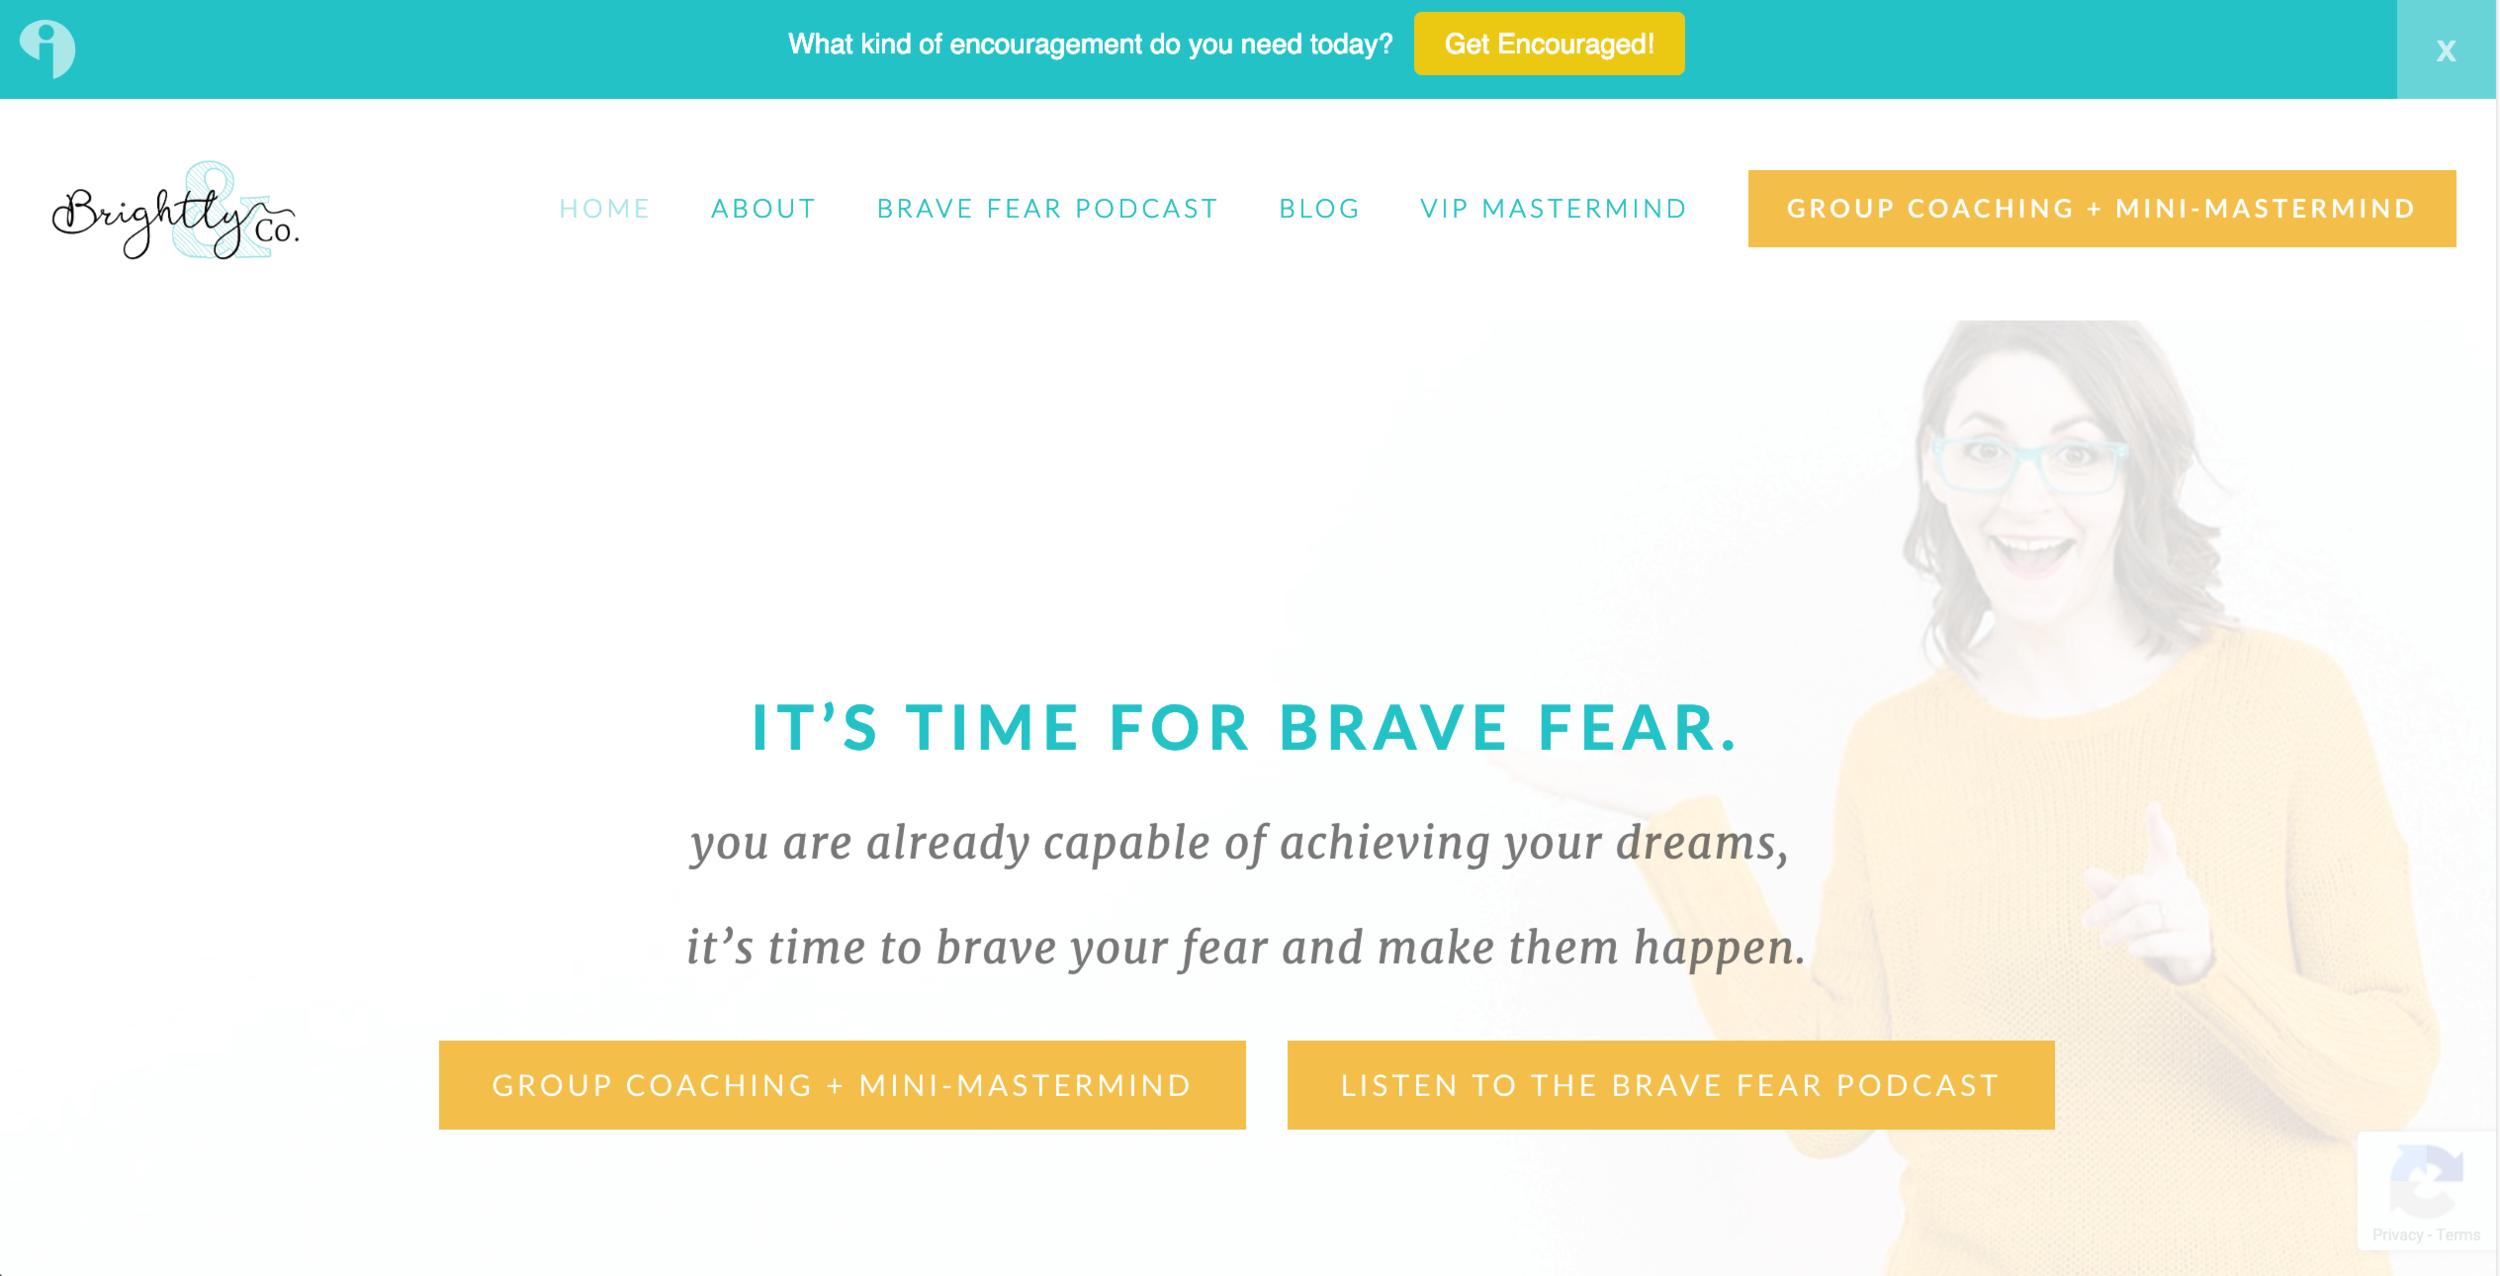 10 Squarespace inspiration websites for coaches9.png